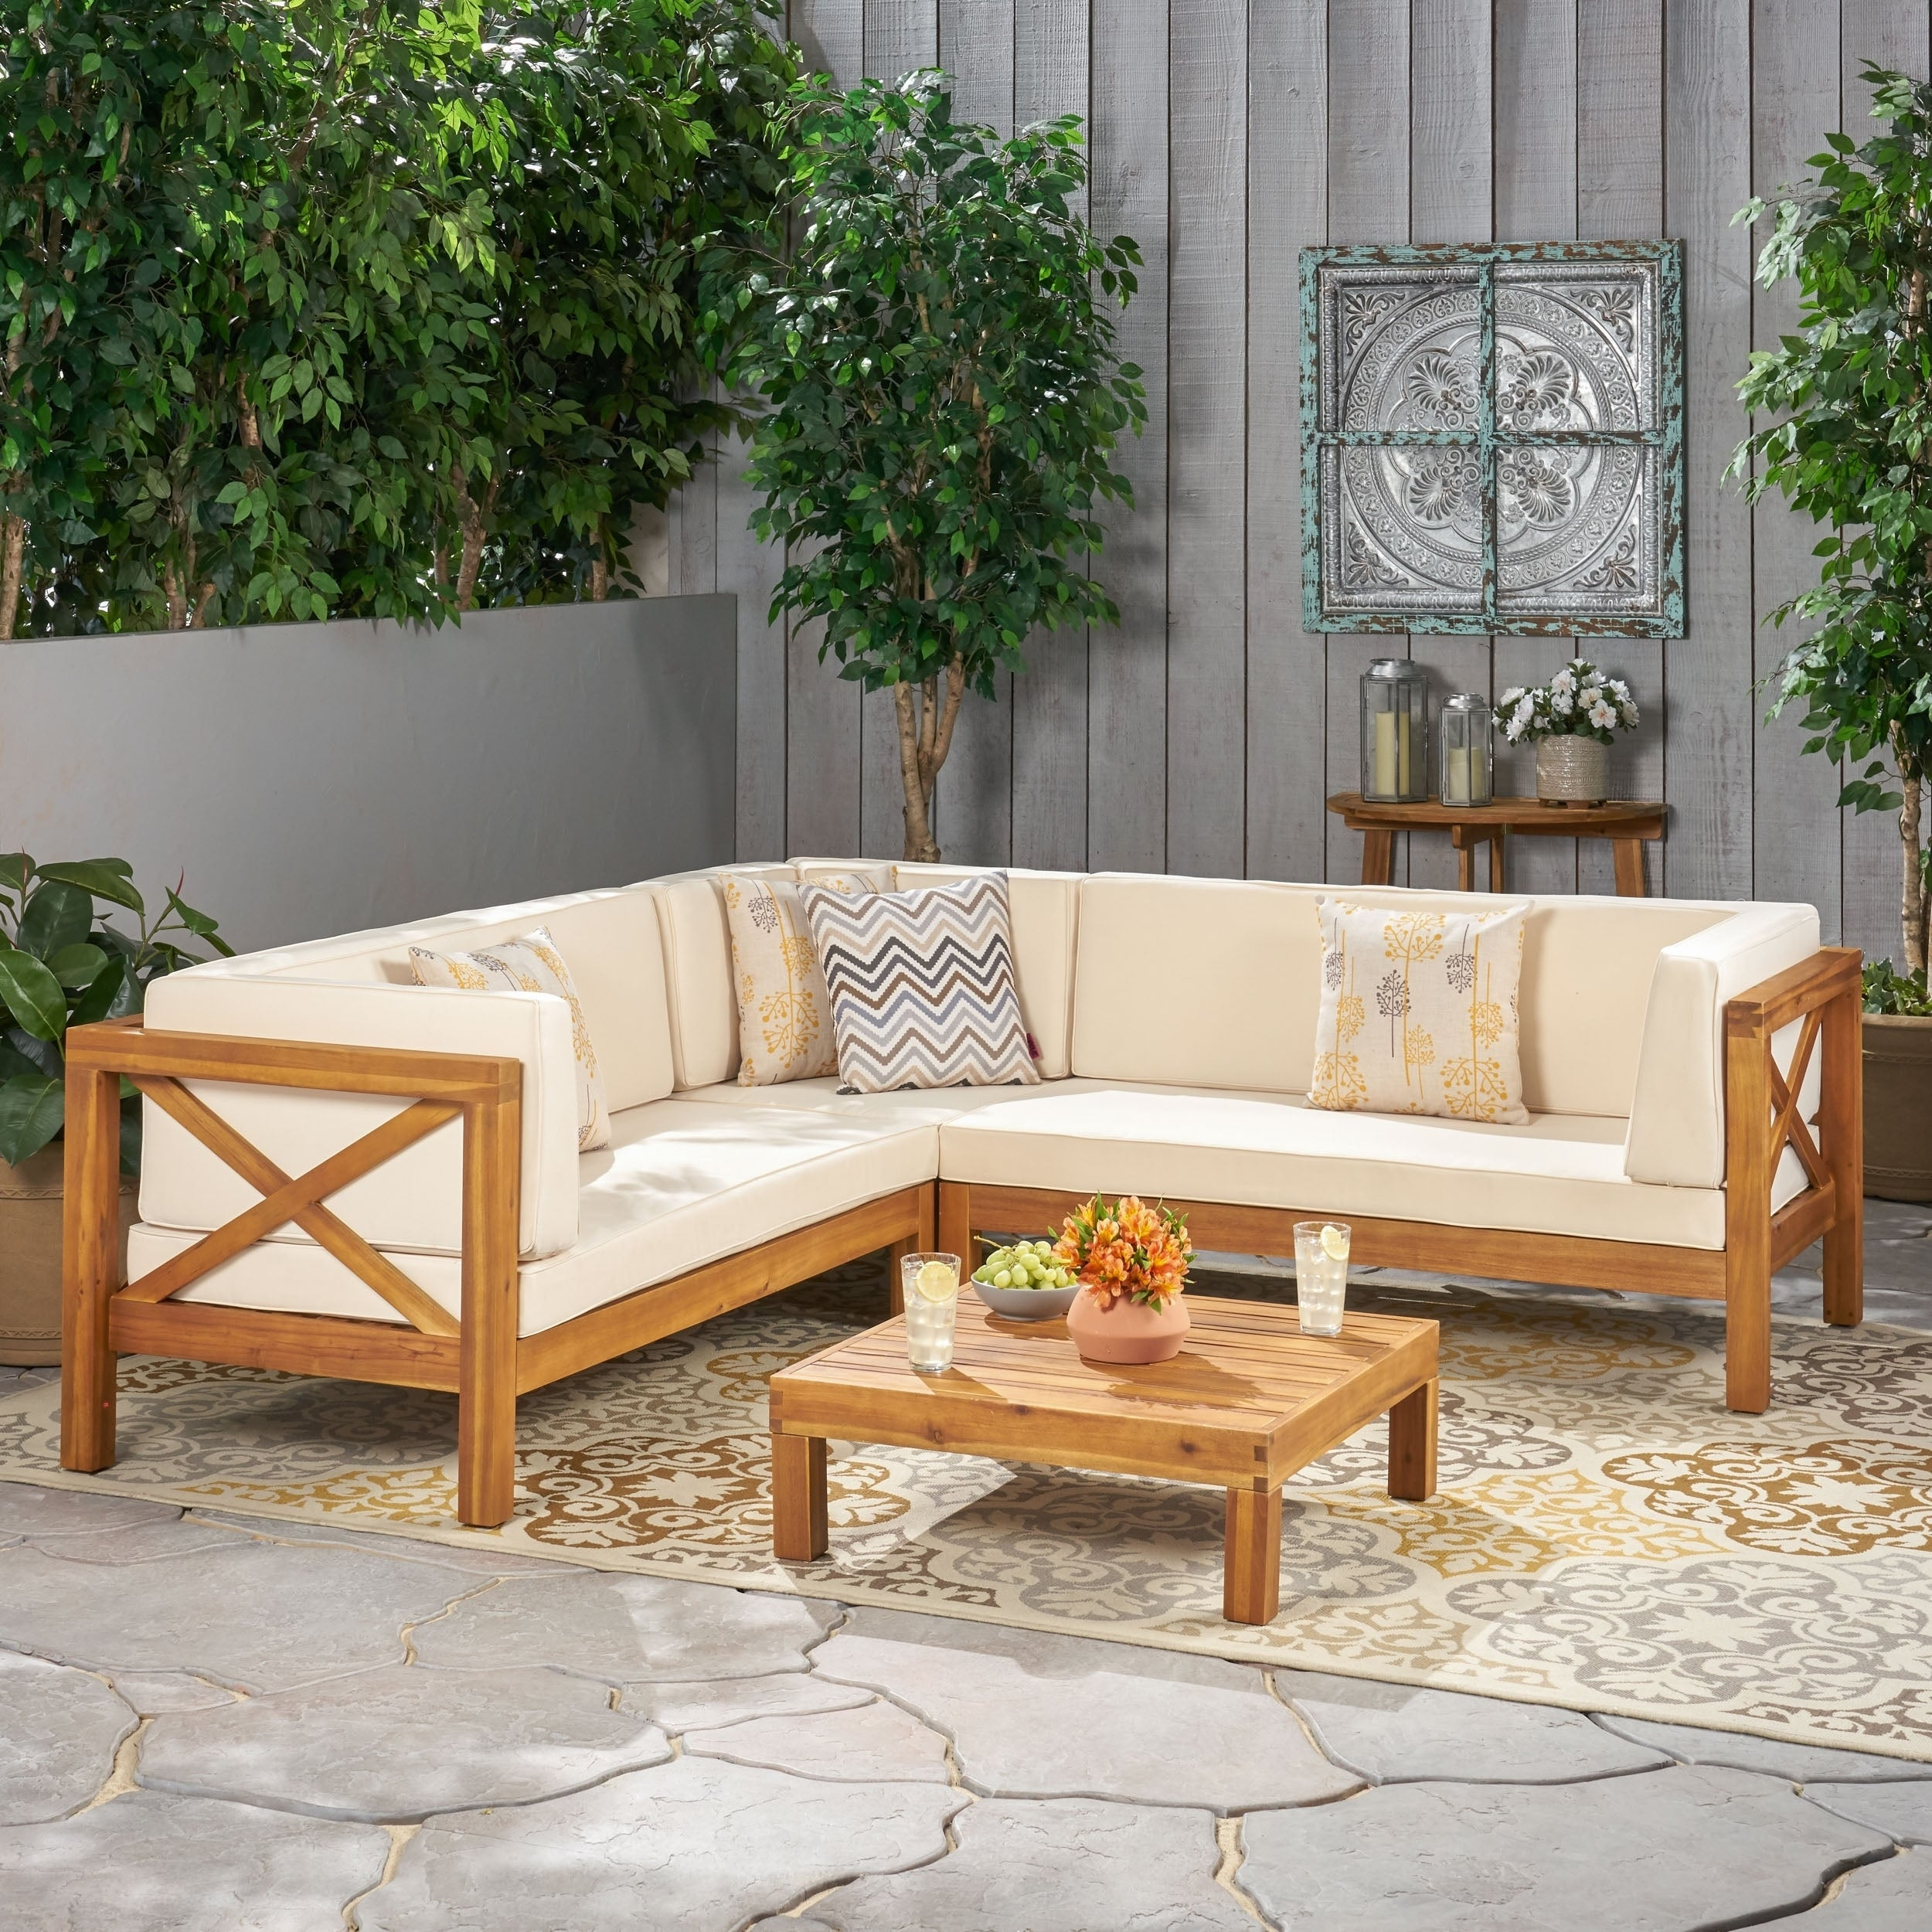 Patio Furniture | Find Great Outdoor Seating U0026 Dining Deals Shopping At  Overstock.com